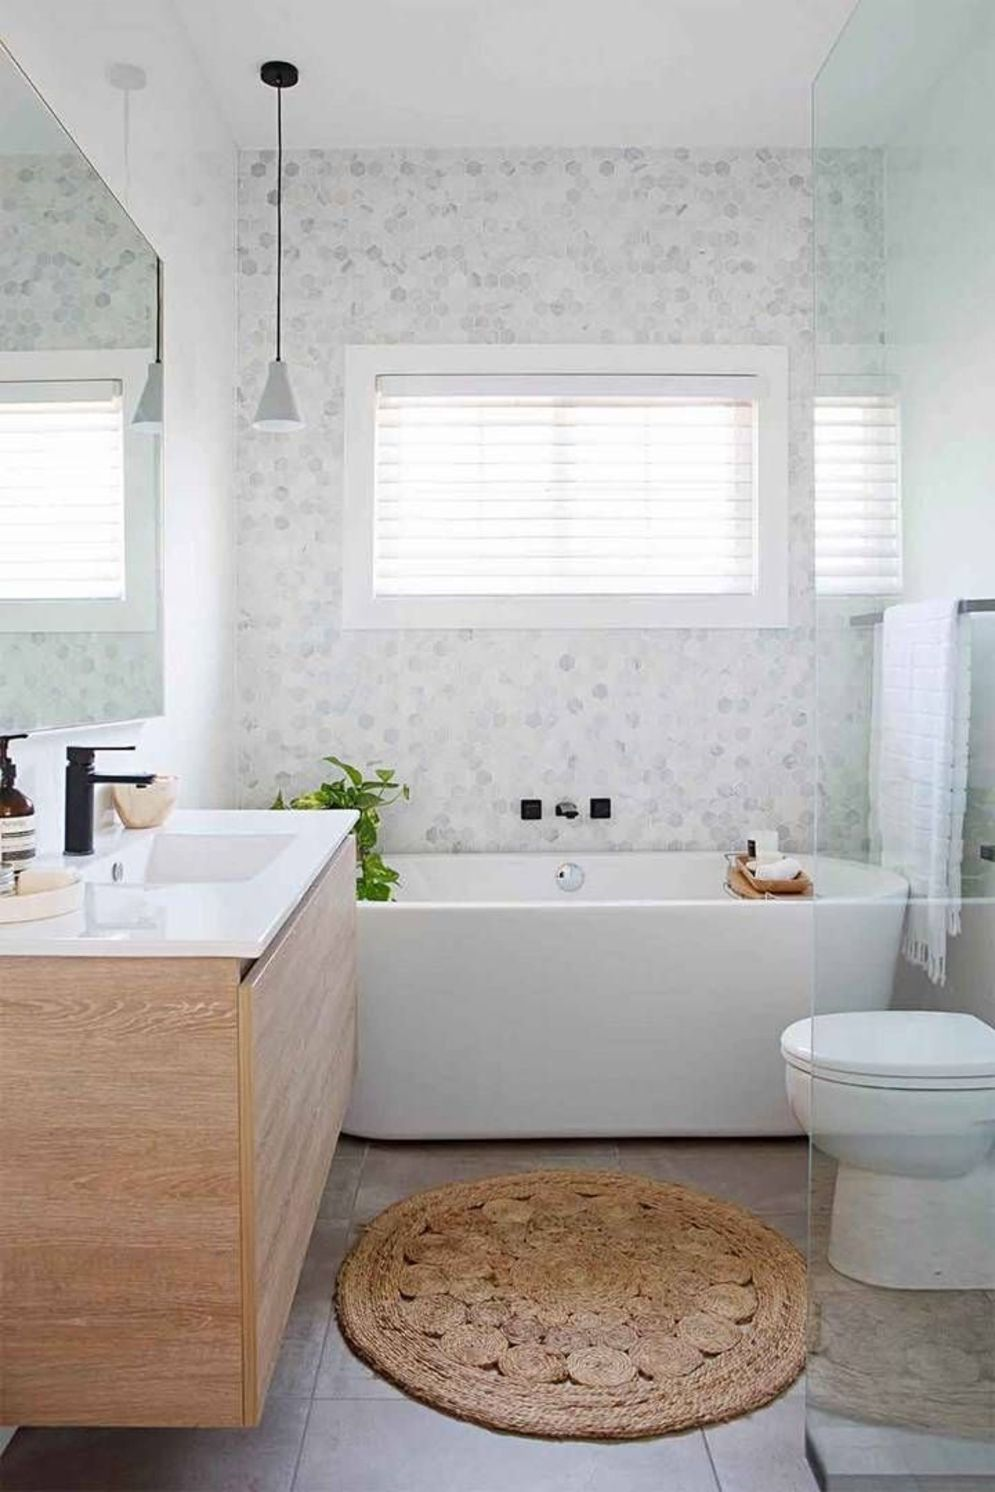 Most savvy bathroom designs with elegant wood finish to give more natural feel Image 13